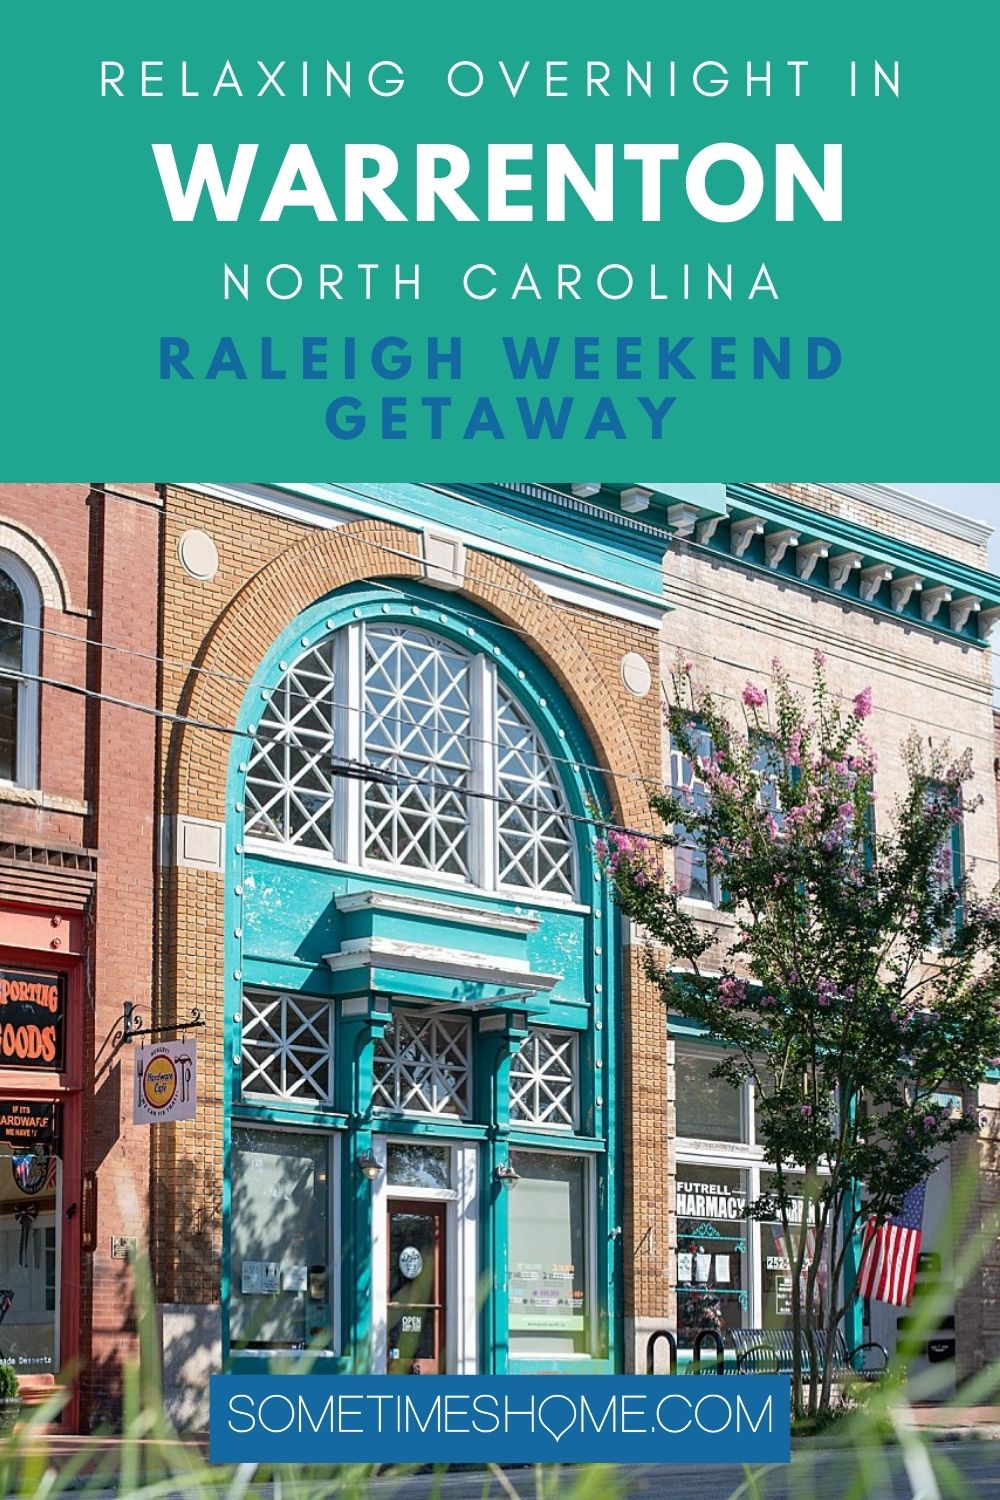 Relaxing Overnight in Warrenton, North Carolina, Raleigh Weekend Getaway Pinterest image with a blue and brick facade in a picture.